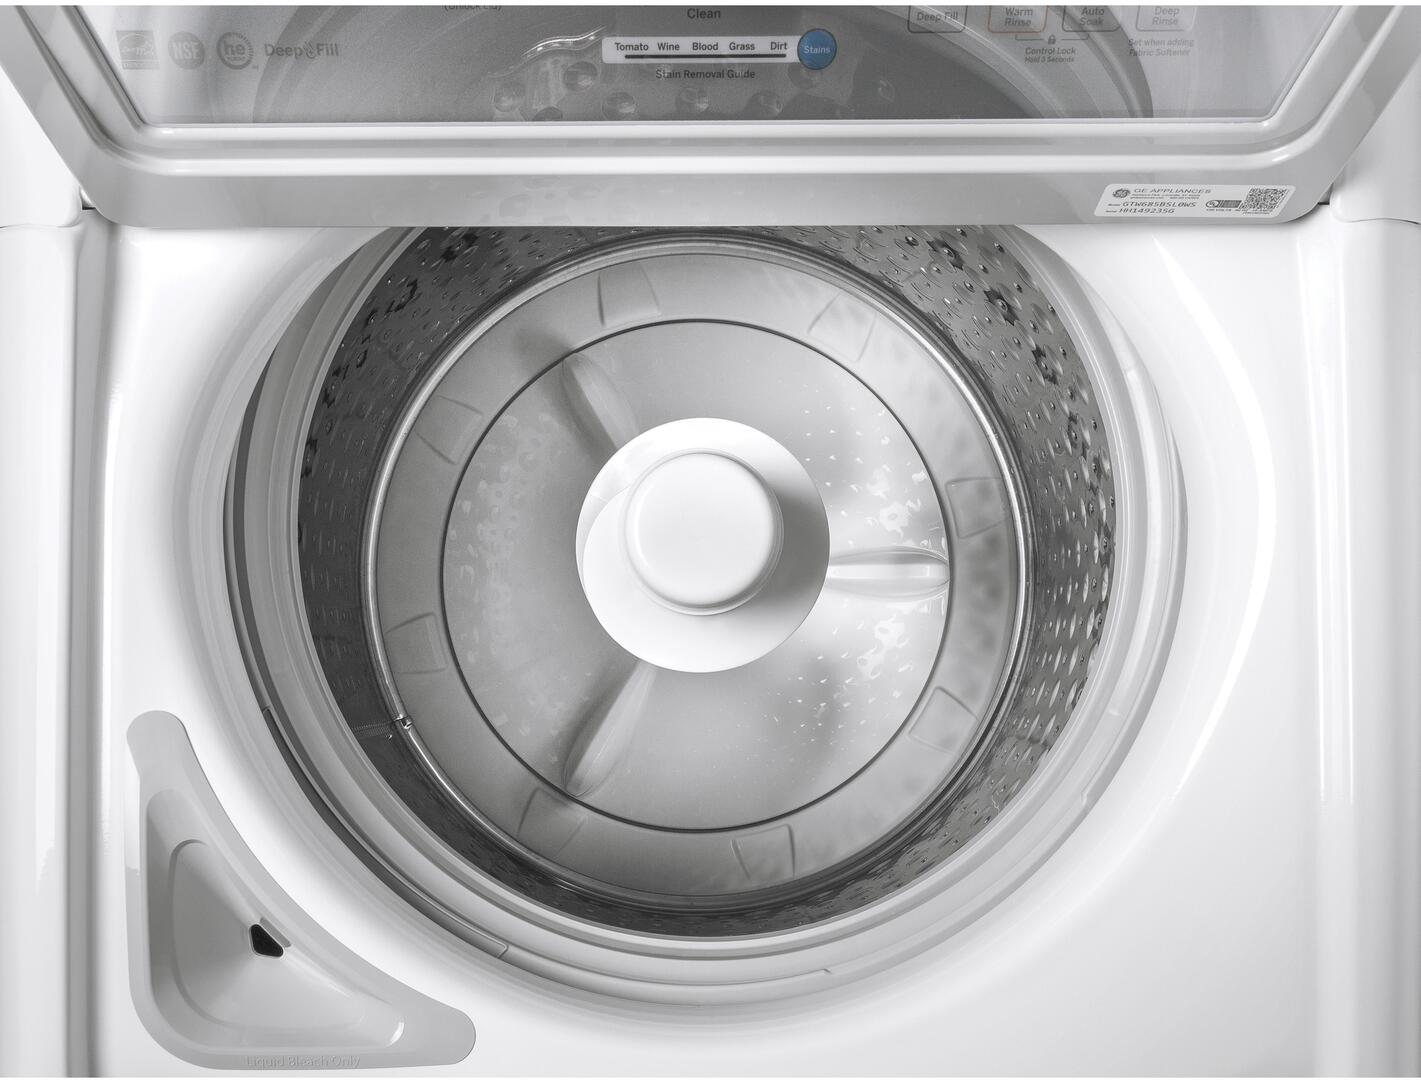 GE GTW685BSLWS 27 Inch 4.5 cu. ft. Top Load Washer, in White ...